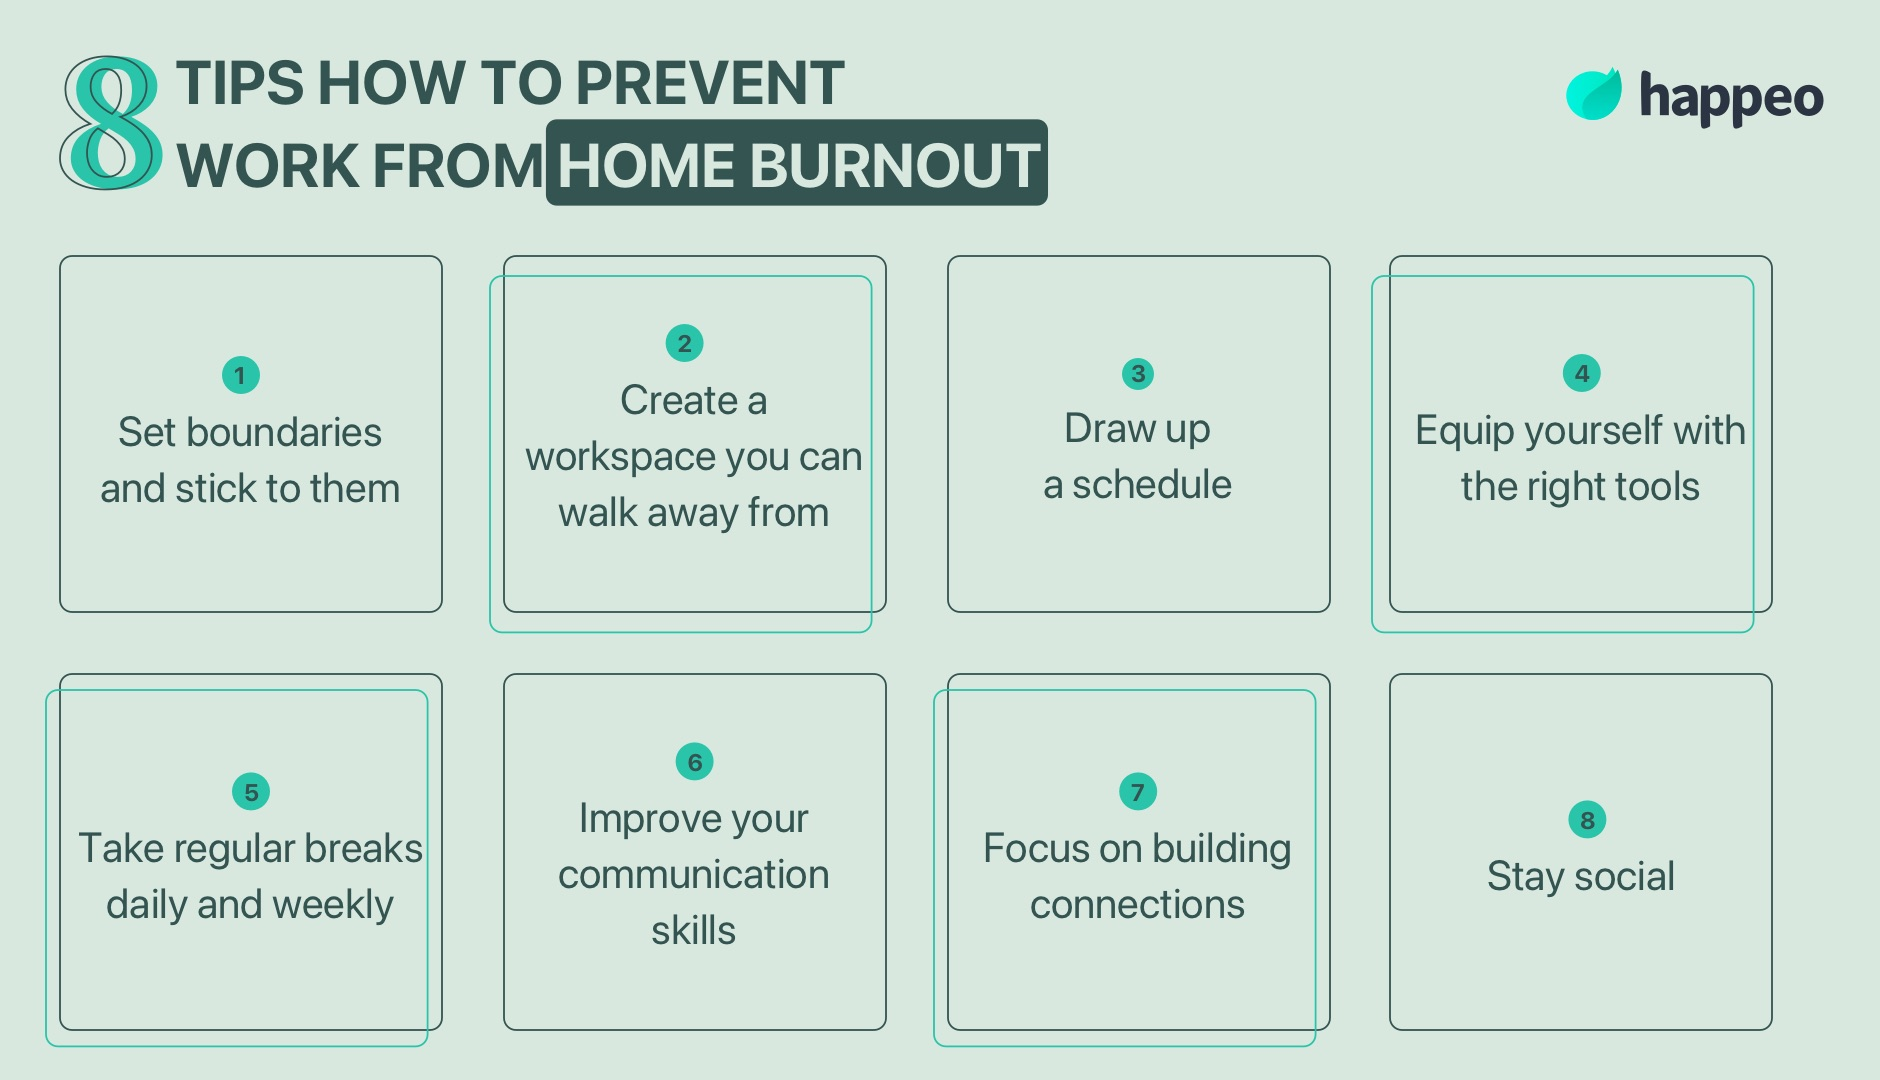 prevent work from home burnout